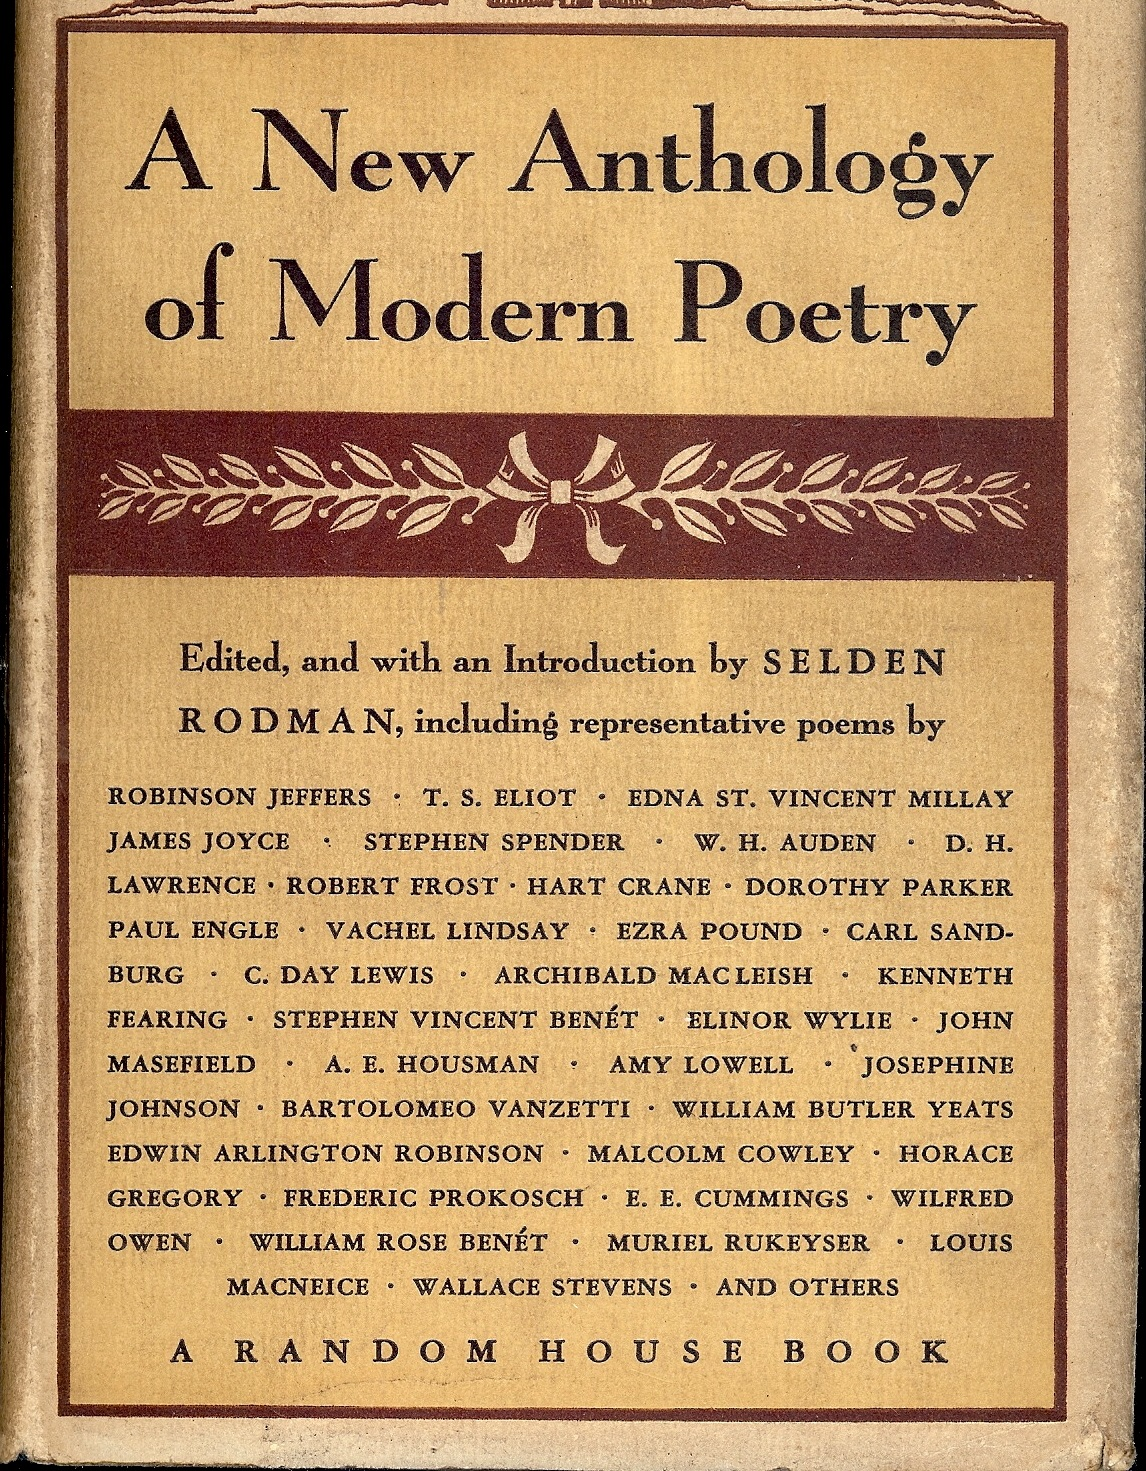 modern poetry Modern poetry may refer to: the most recent periods in the history of poetry or  modernist poetry, the application of modernist aesthetics to poetry.